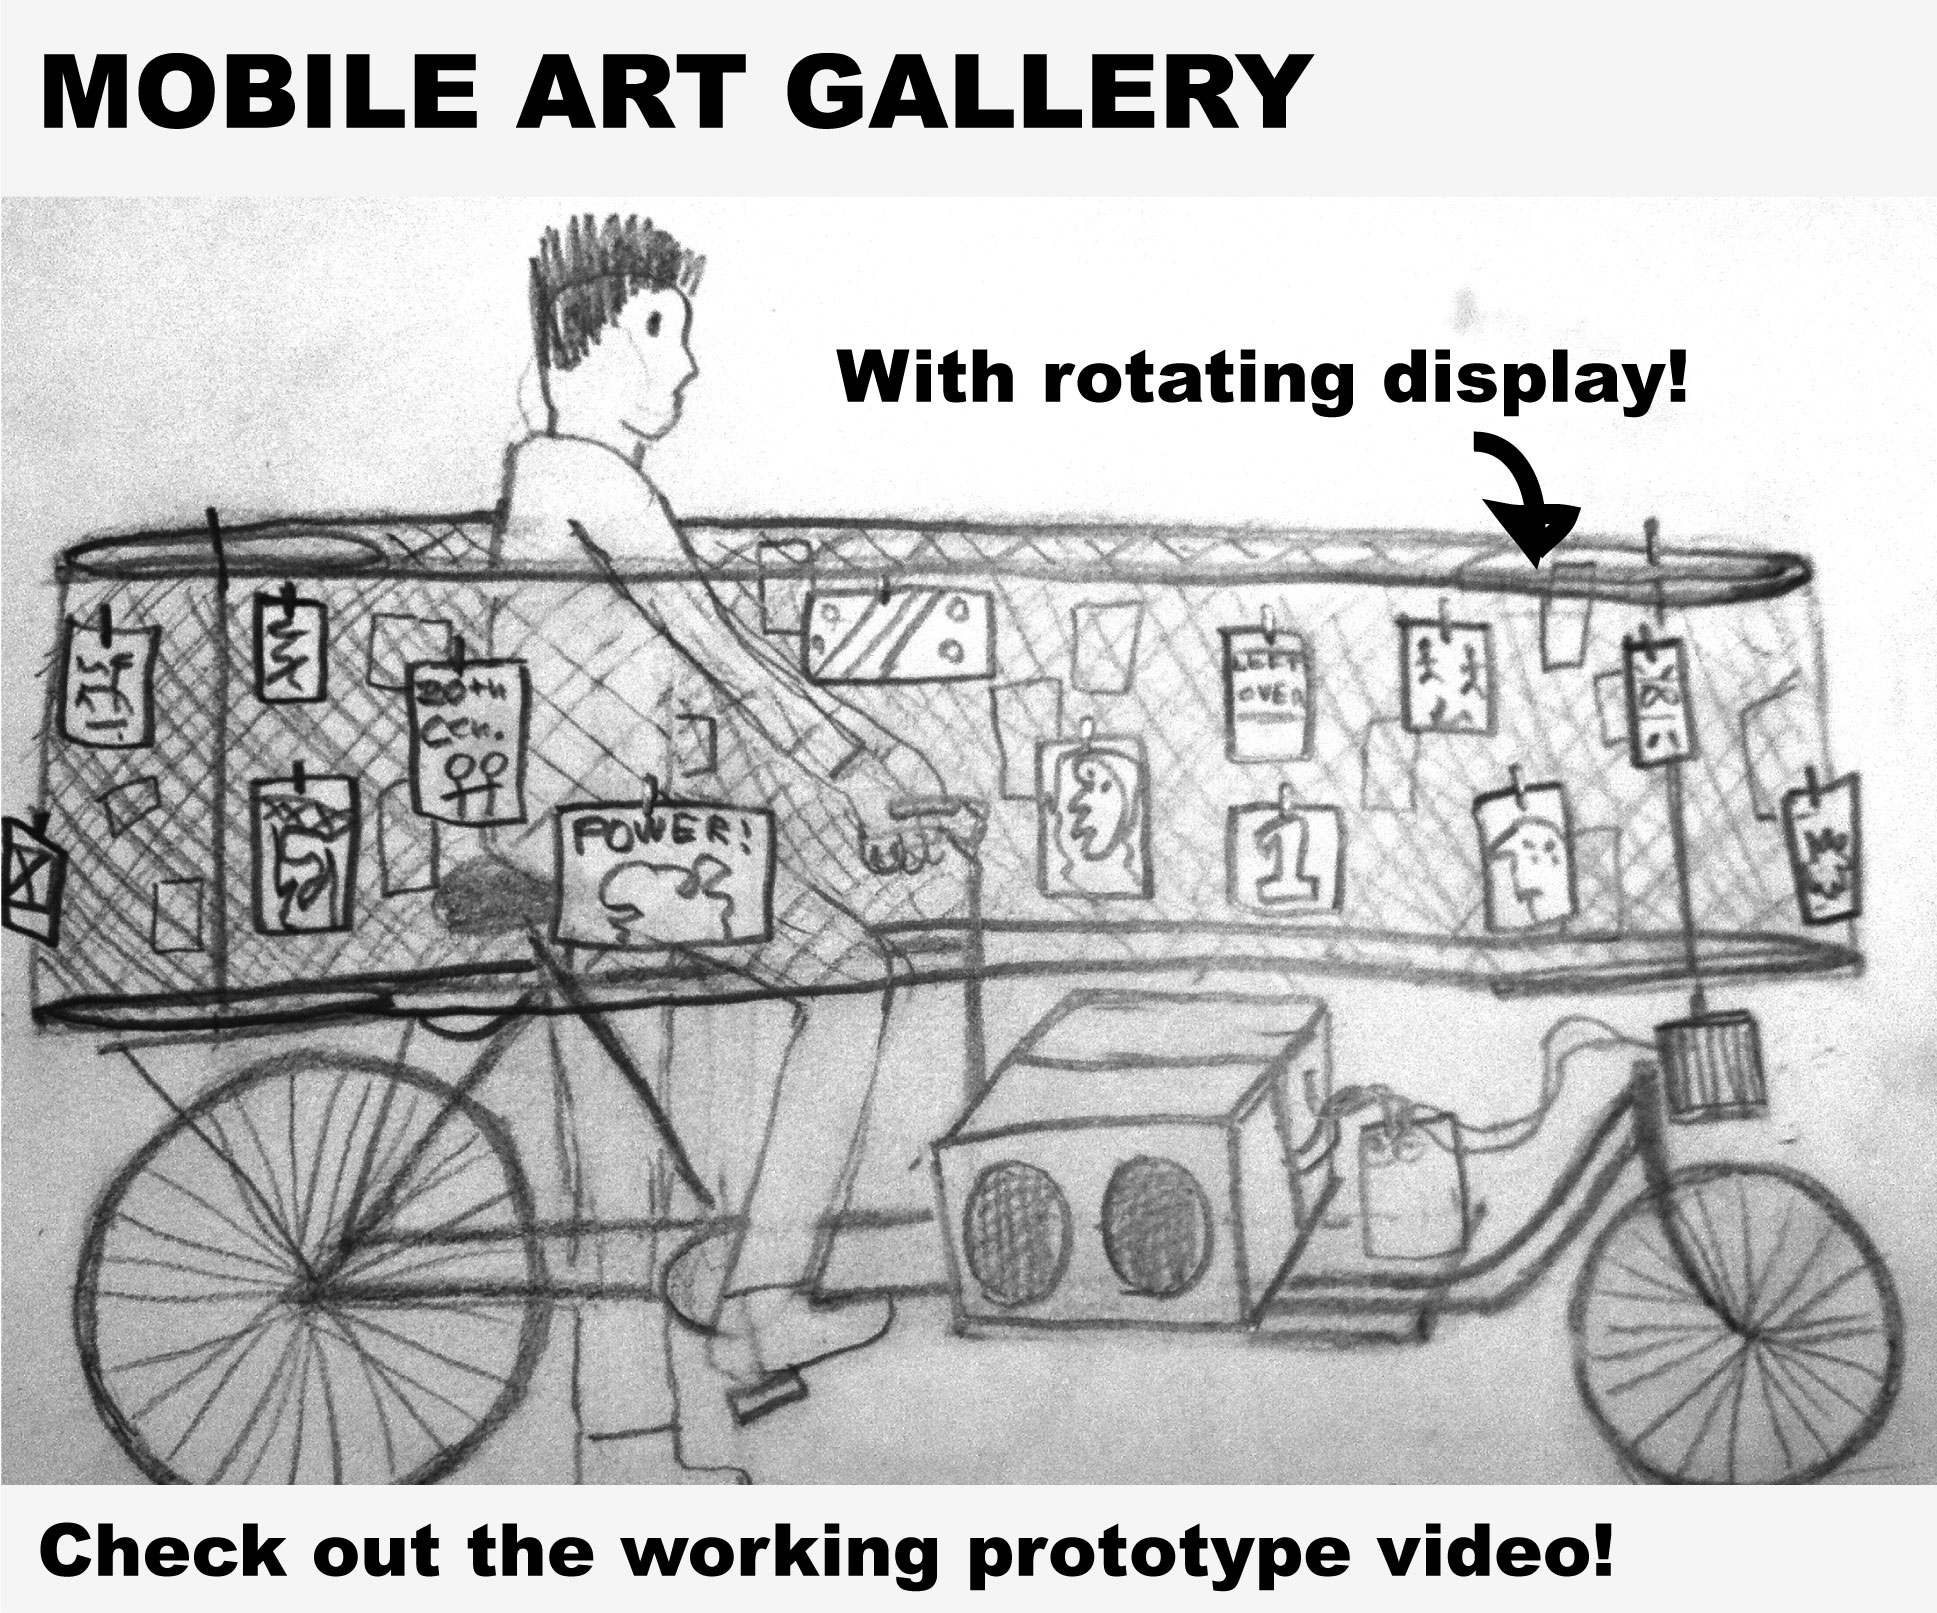 Art Gallery with Moving Walls on Bicycle